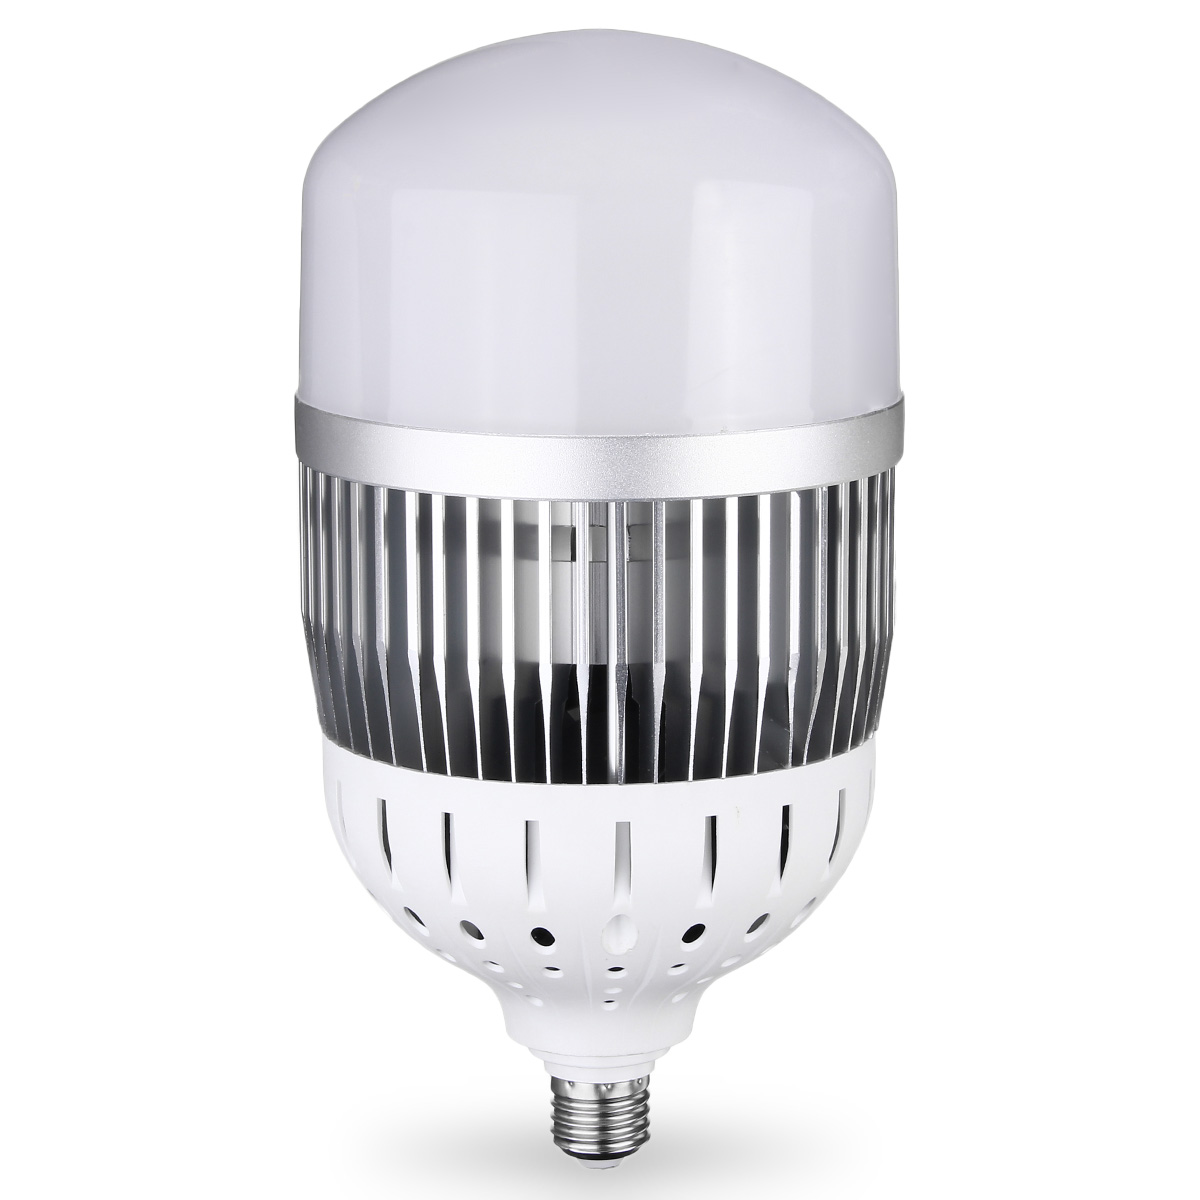 e27 150w smd2835 100lm w cool white high brightness led light bulb for factory industry ac85. Black Bedroom Furniture Sets. Home Design Ideas